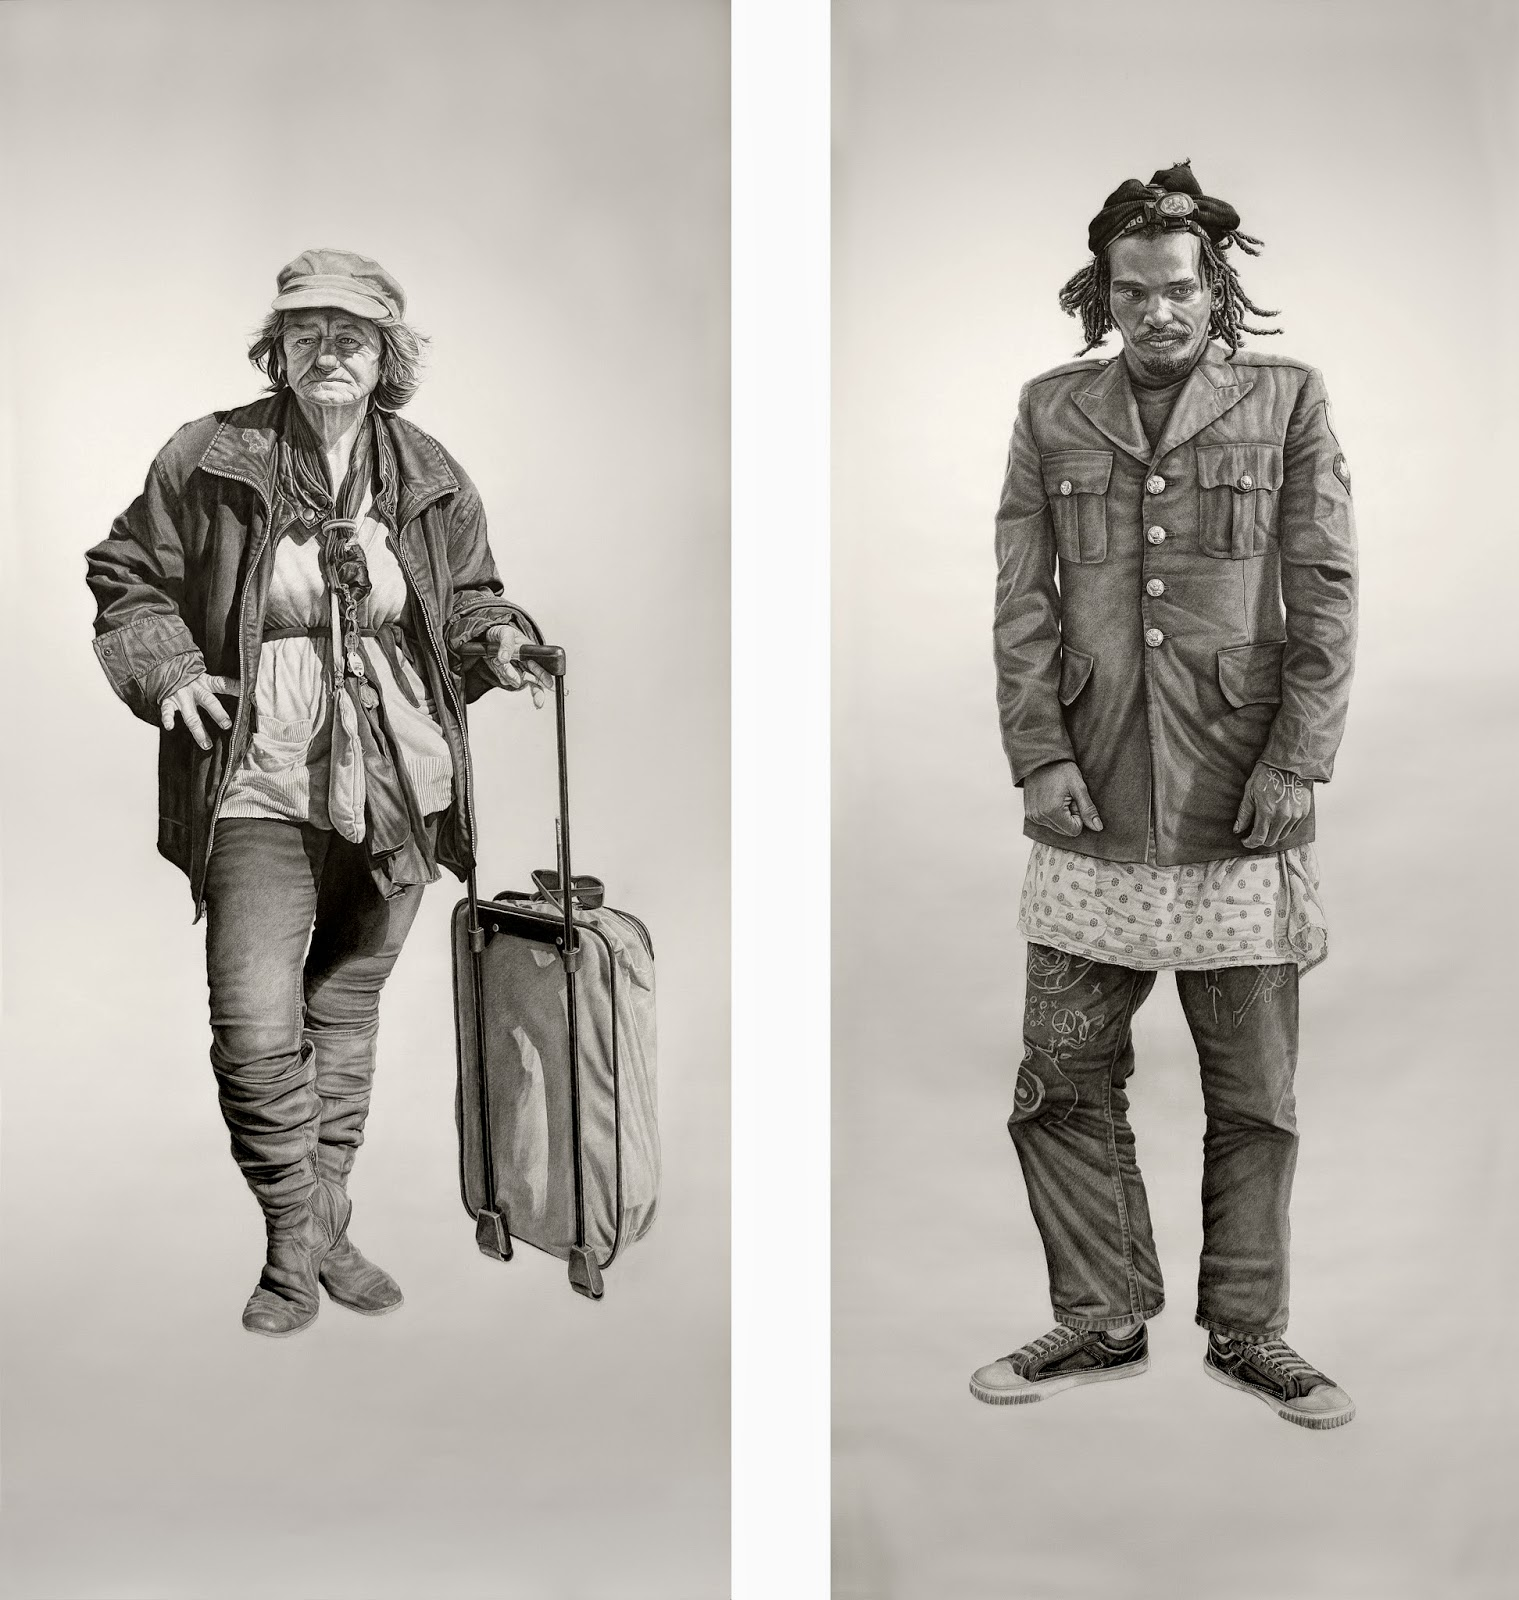 (L) Mommalisa (R) Yogi | Both works 42x94in, Charcoal & Graphite on paper